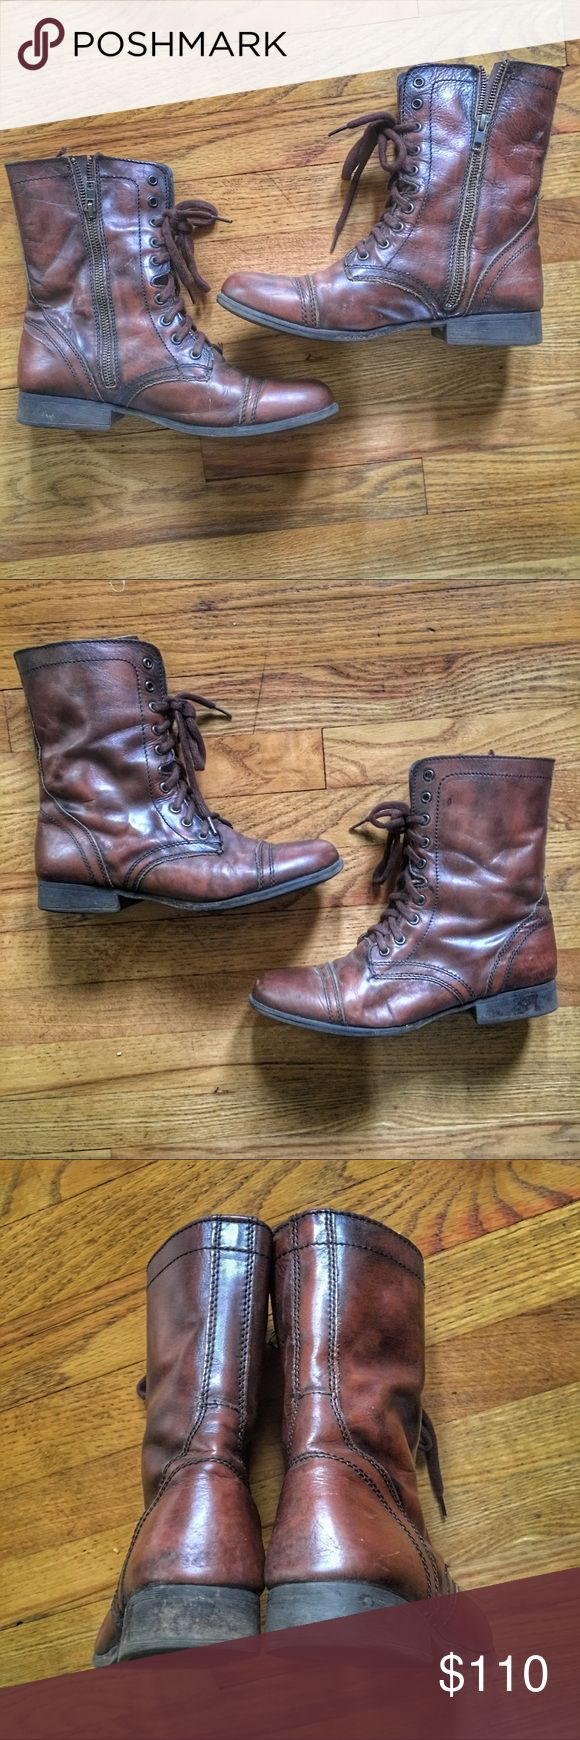 Steve Madden mid-calf Leather Boots - retails $110 Steve Madden Mid-calf Zip-up Leather Boots.  Pre-owned worn a couple times.  Retails $110. Get it cheaper on Ⓜ️erc.  See something you like but it's not here next week? We sell in store and across multiple platforms, so items go quick! If you're interested, act on it before you lose it! Steve Madden Shoes Ankle Boots & Booties